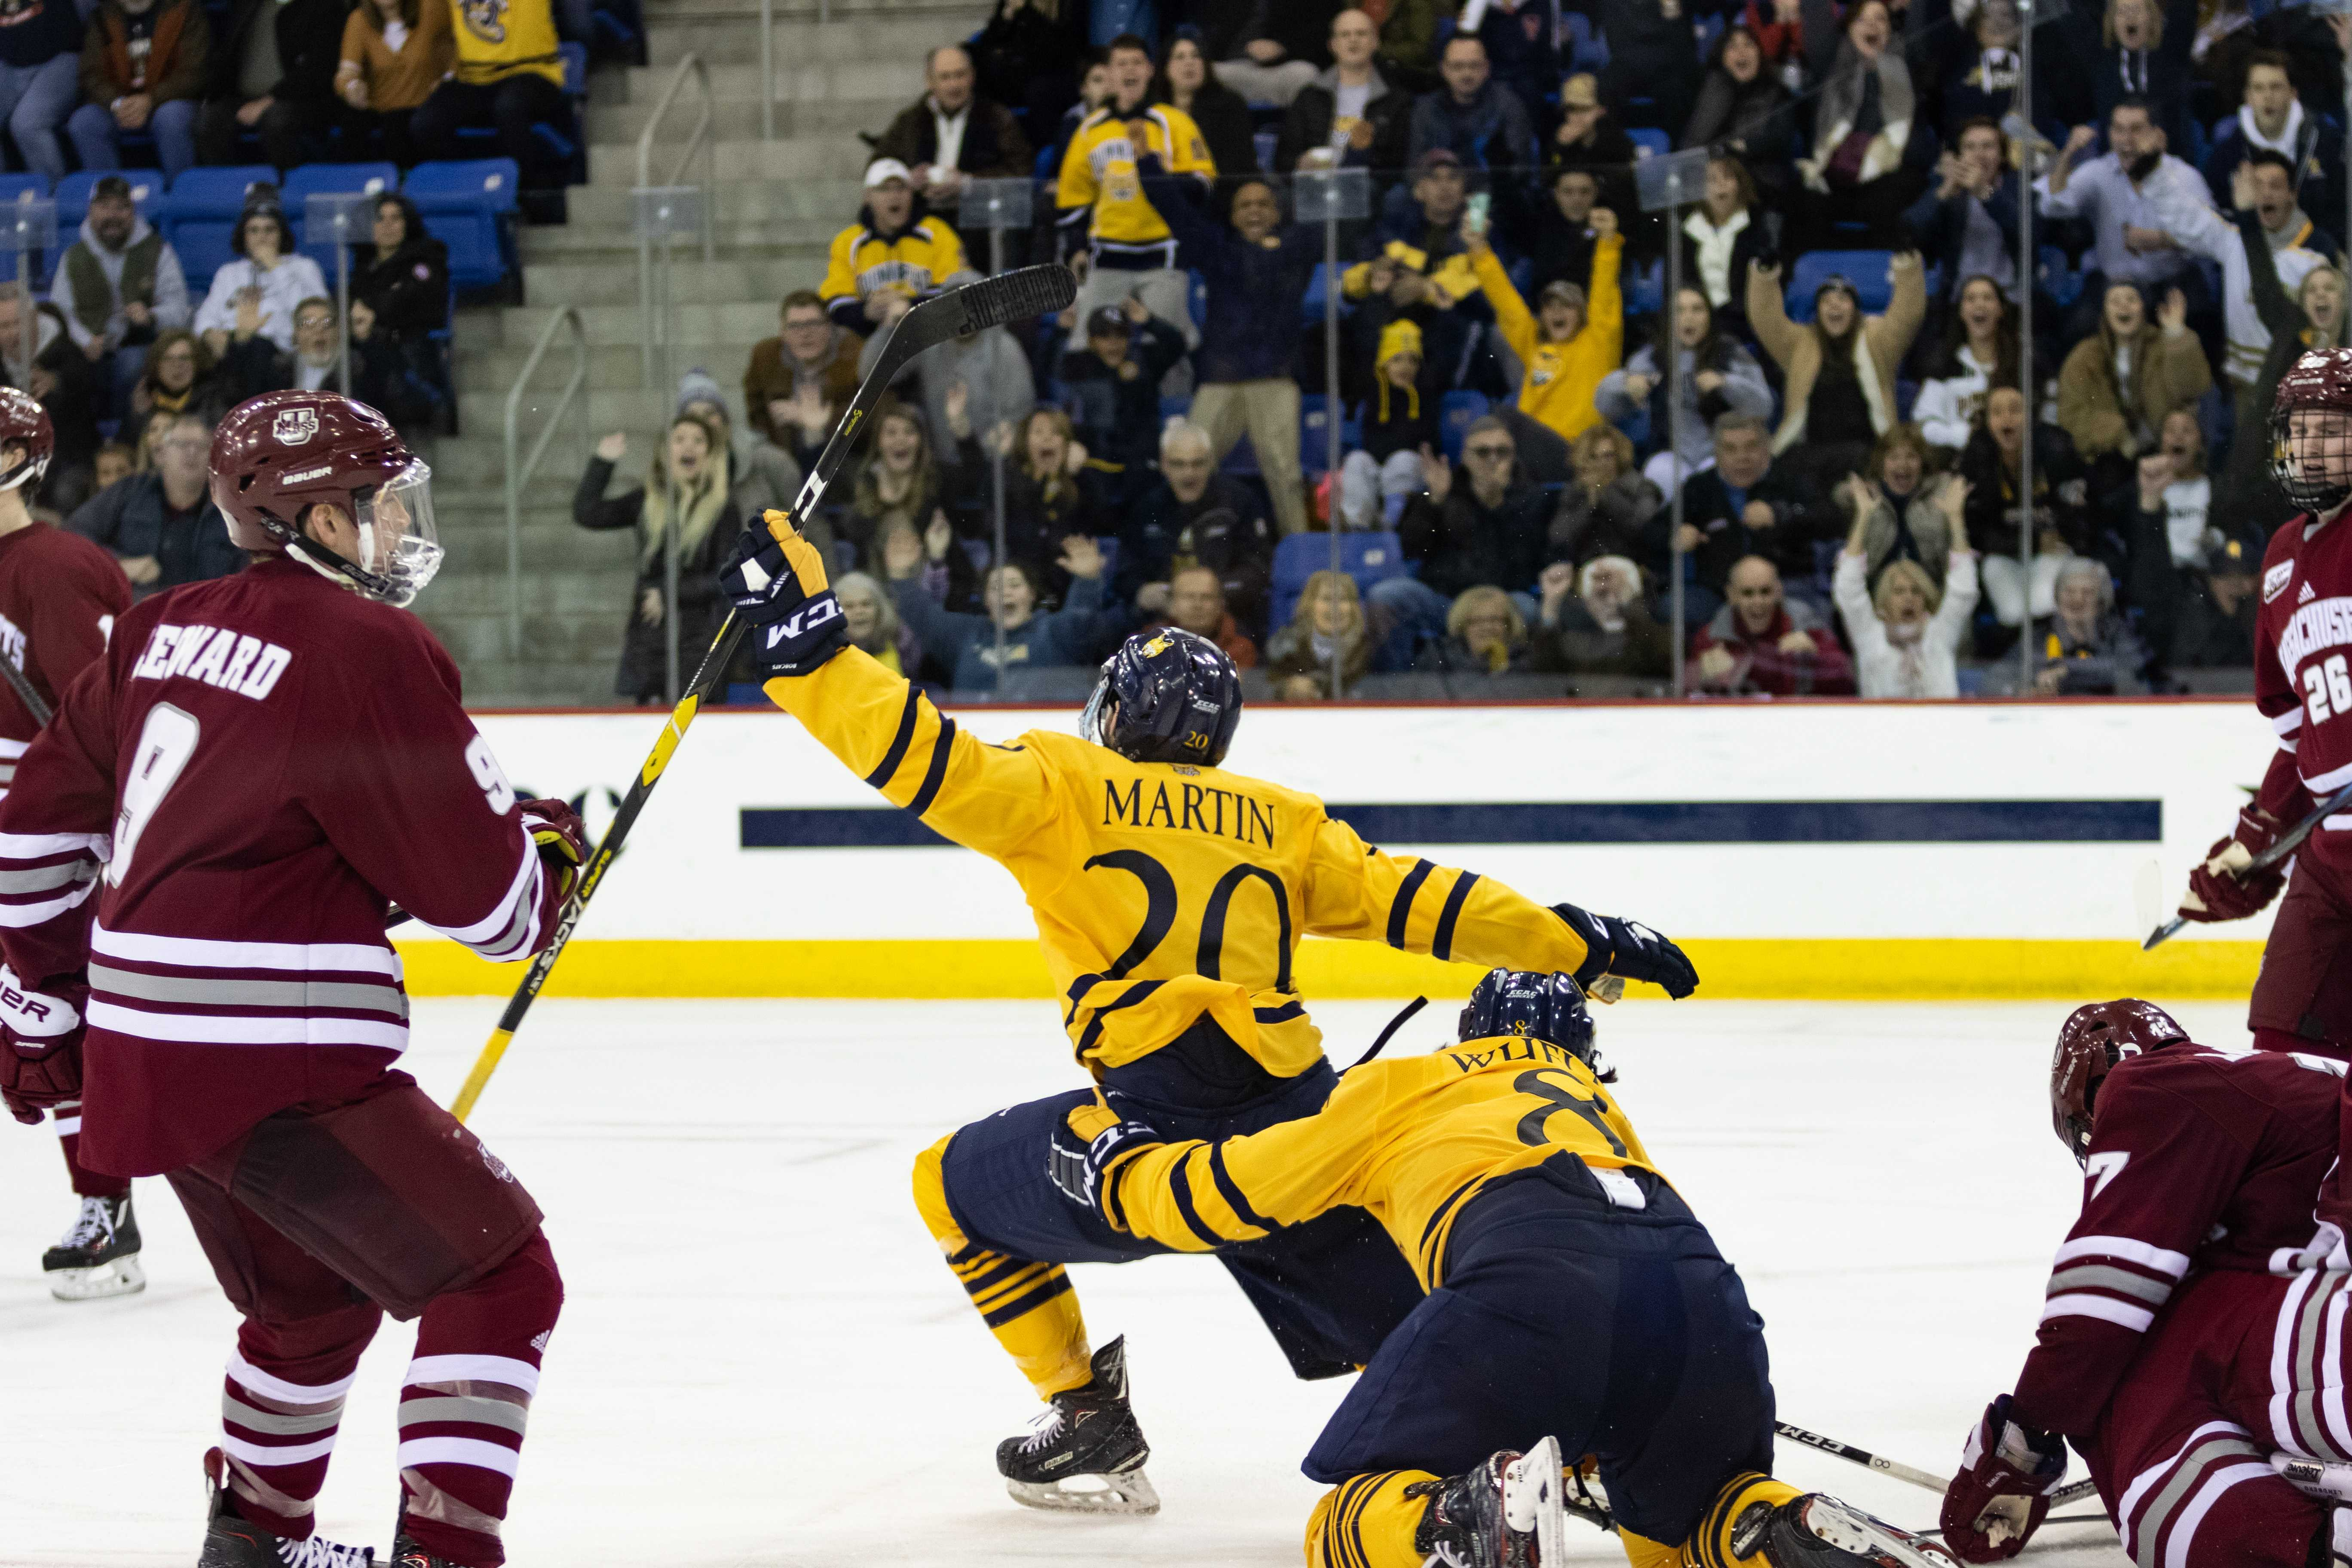 No. 8 Quinnipiac men's ice hockey upsets No. 1 UMass, 4-0